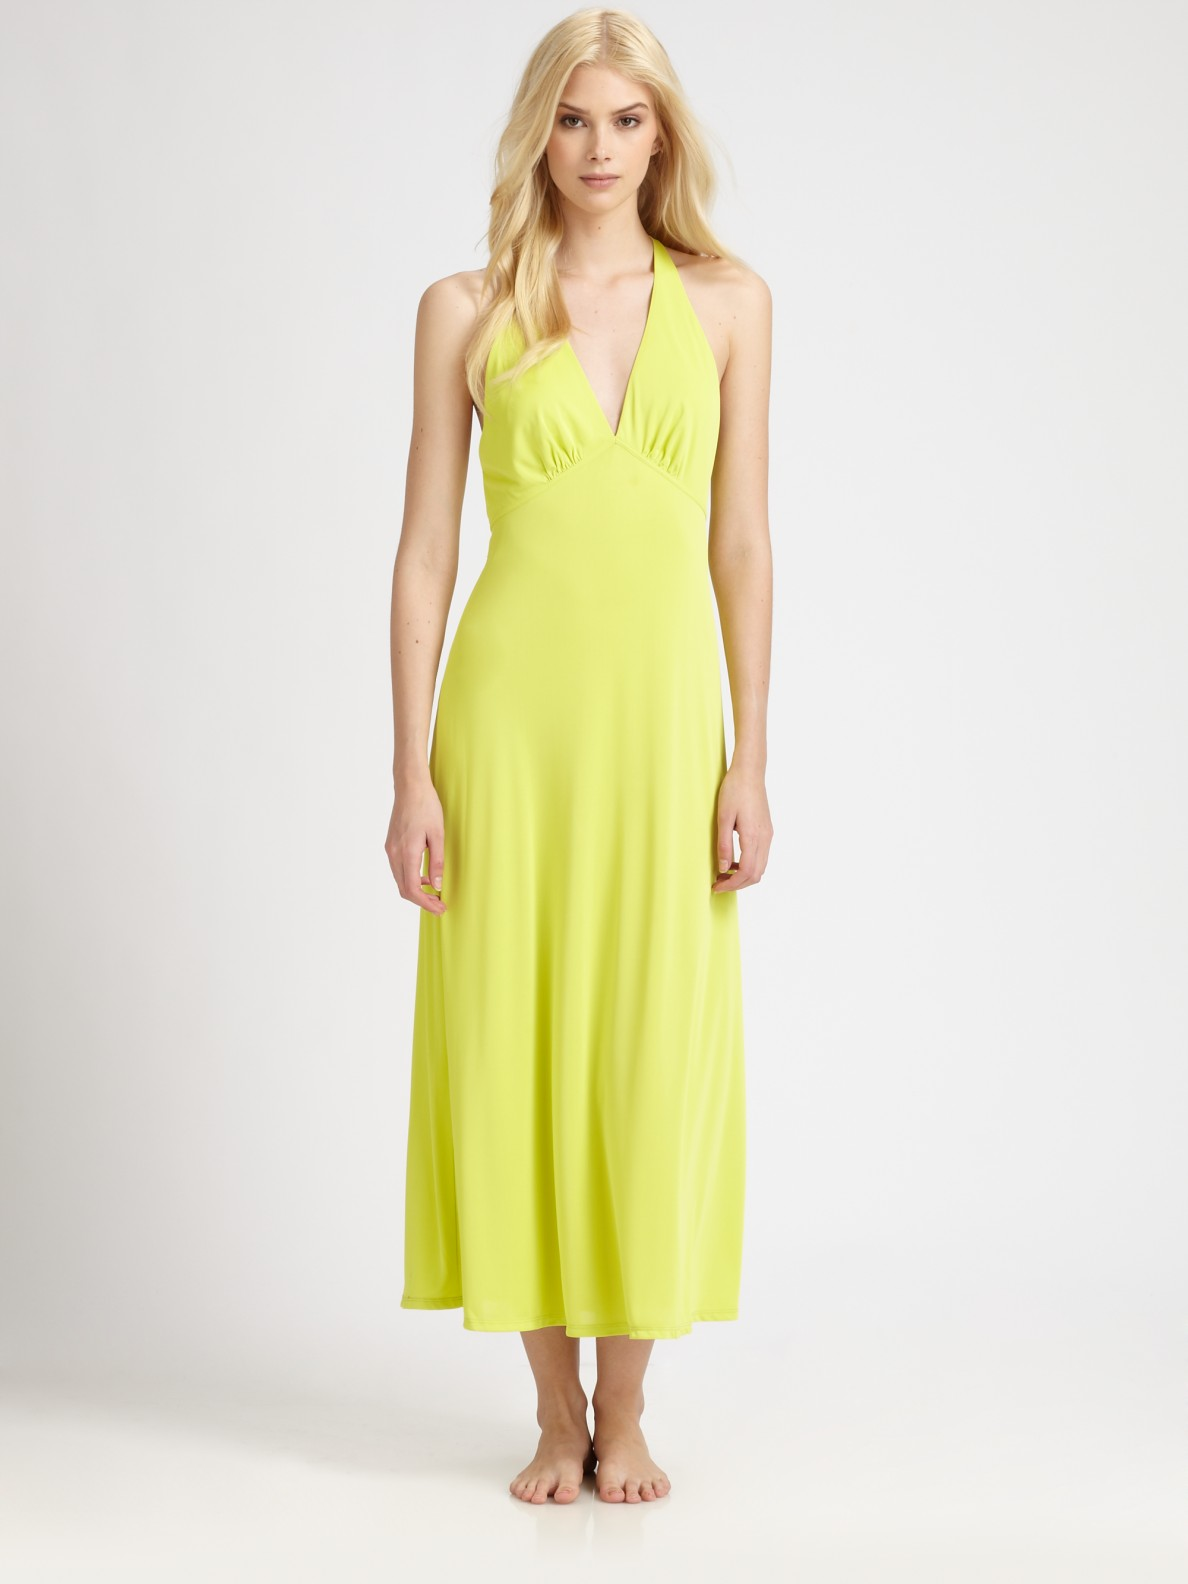 Lyst - Natori Aphrodite Gown in Yellow